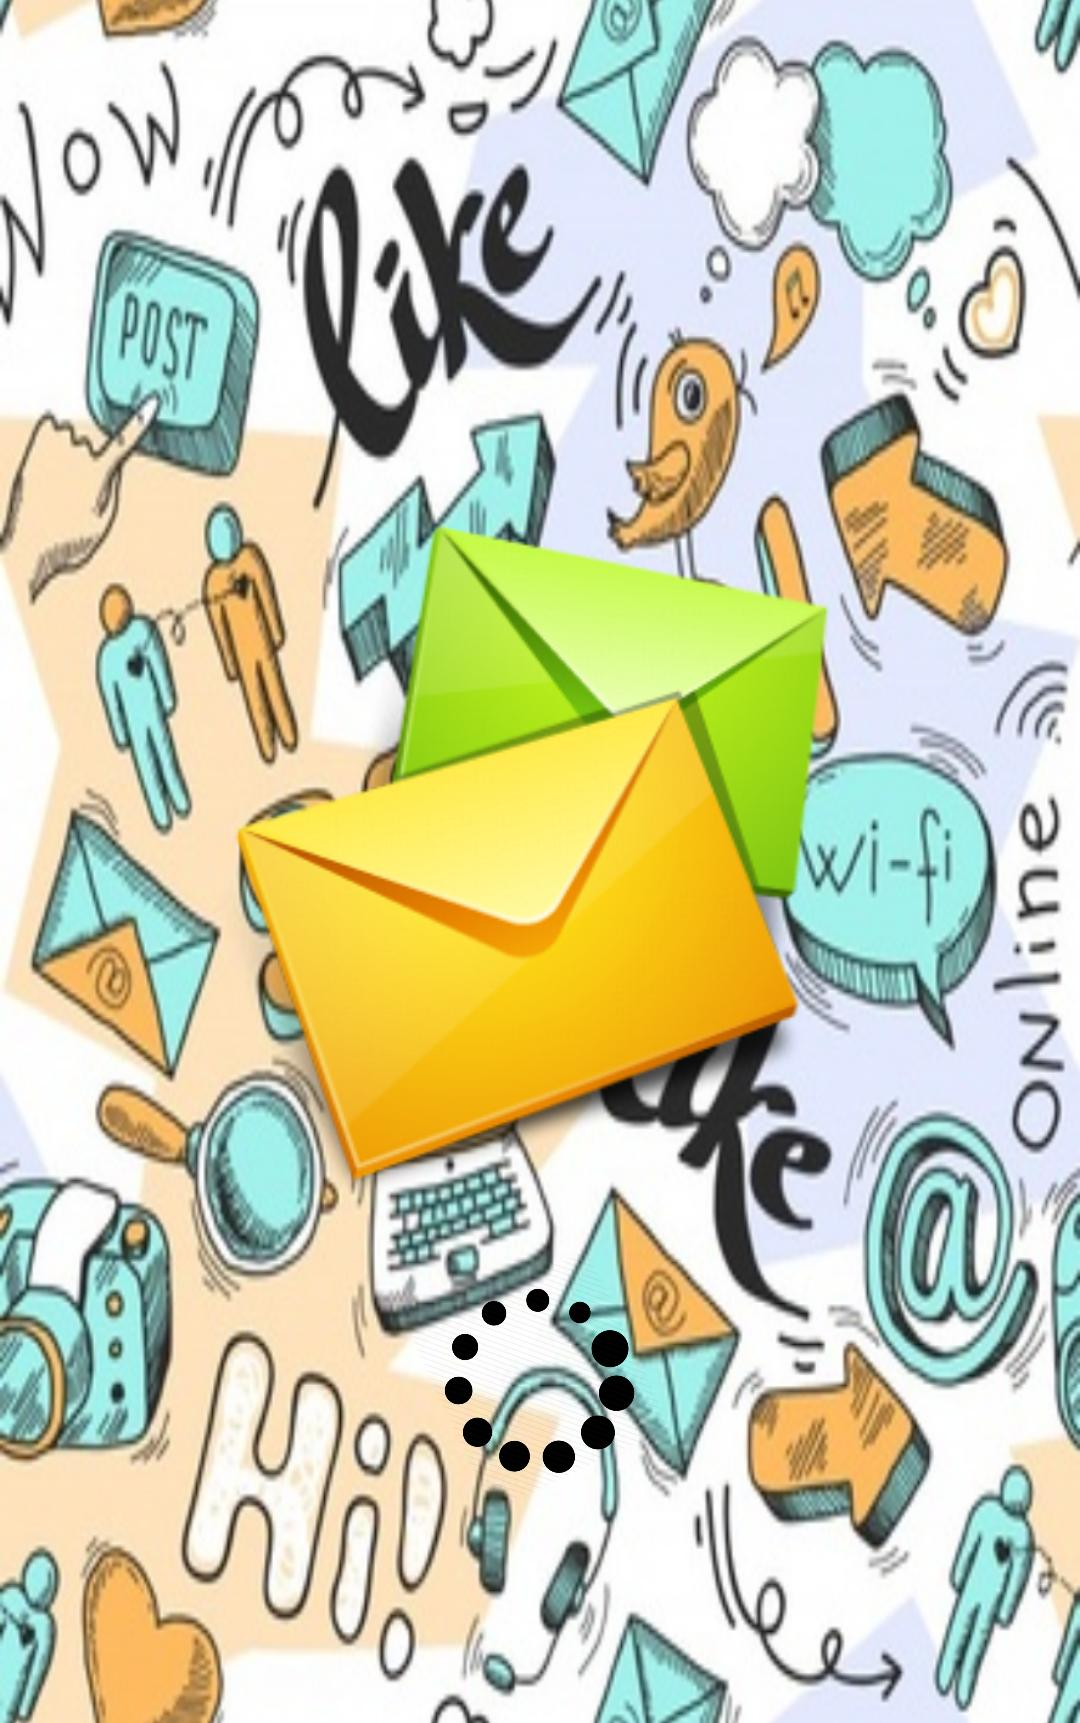 TempMail - Free Temporary Mail Address for Android - APK Download